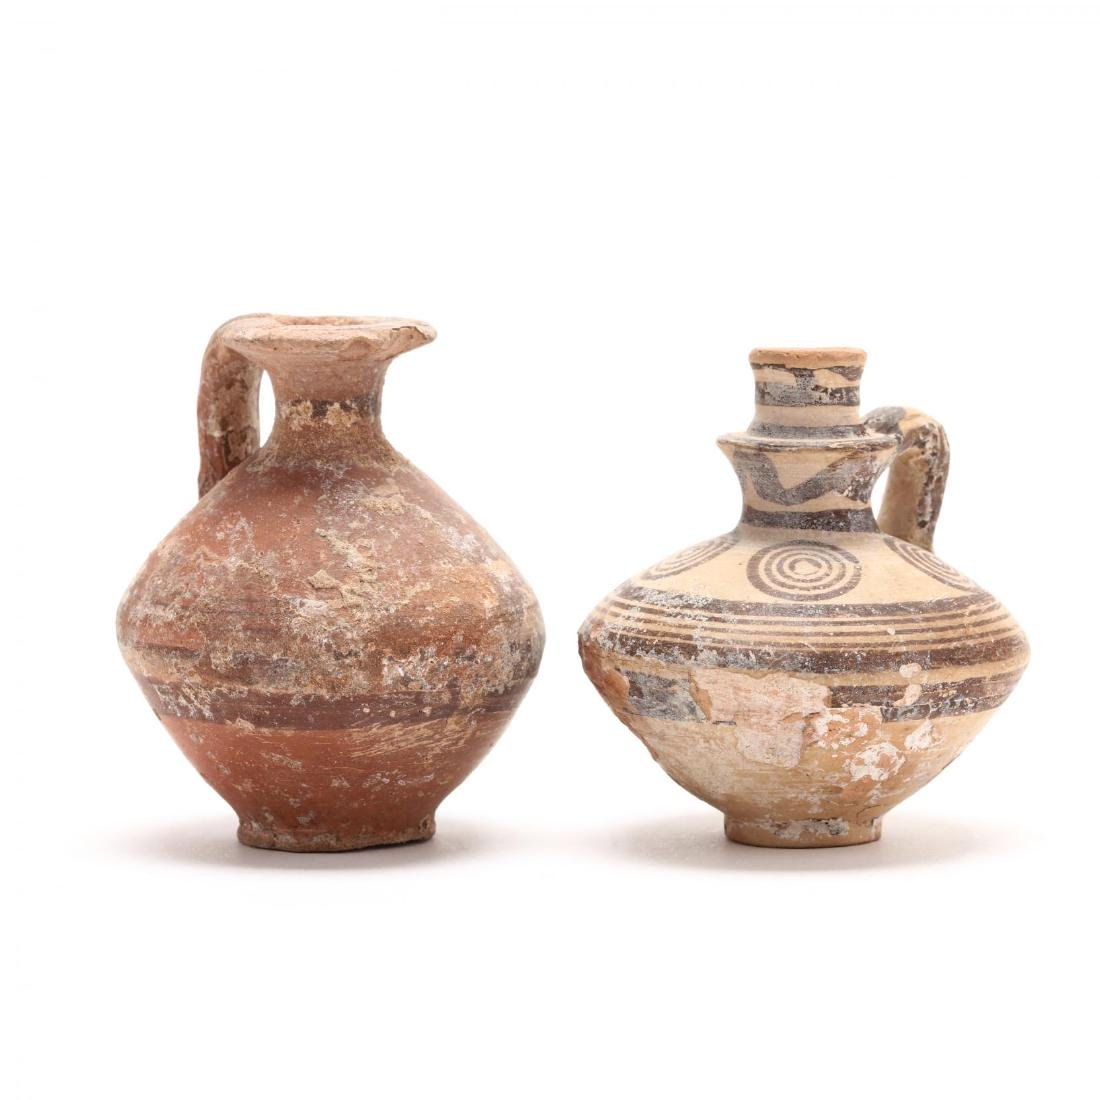 Two Cypriot Bronze Age Red Ware Juglets